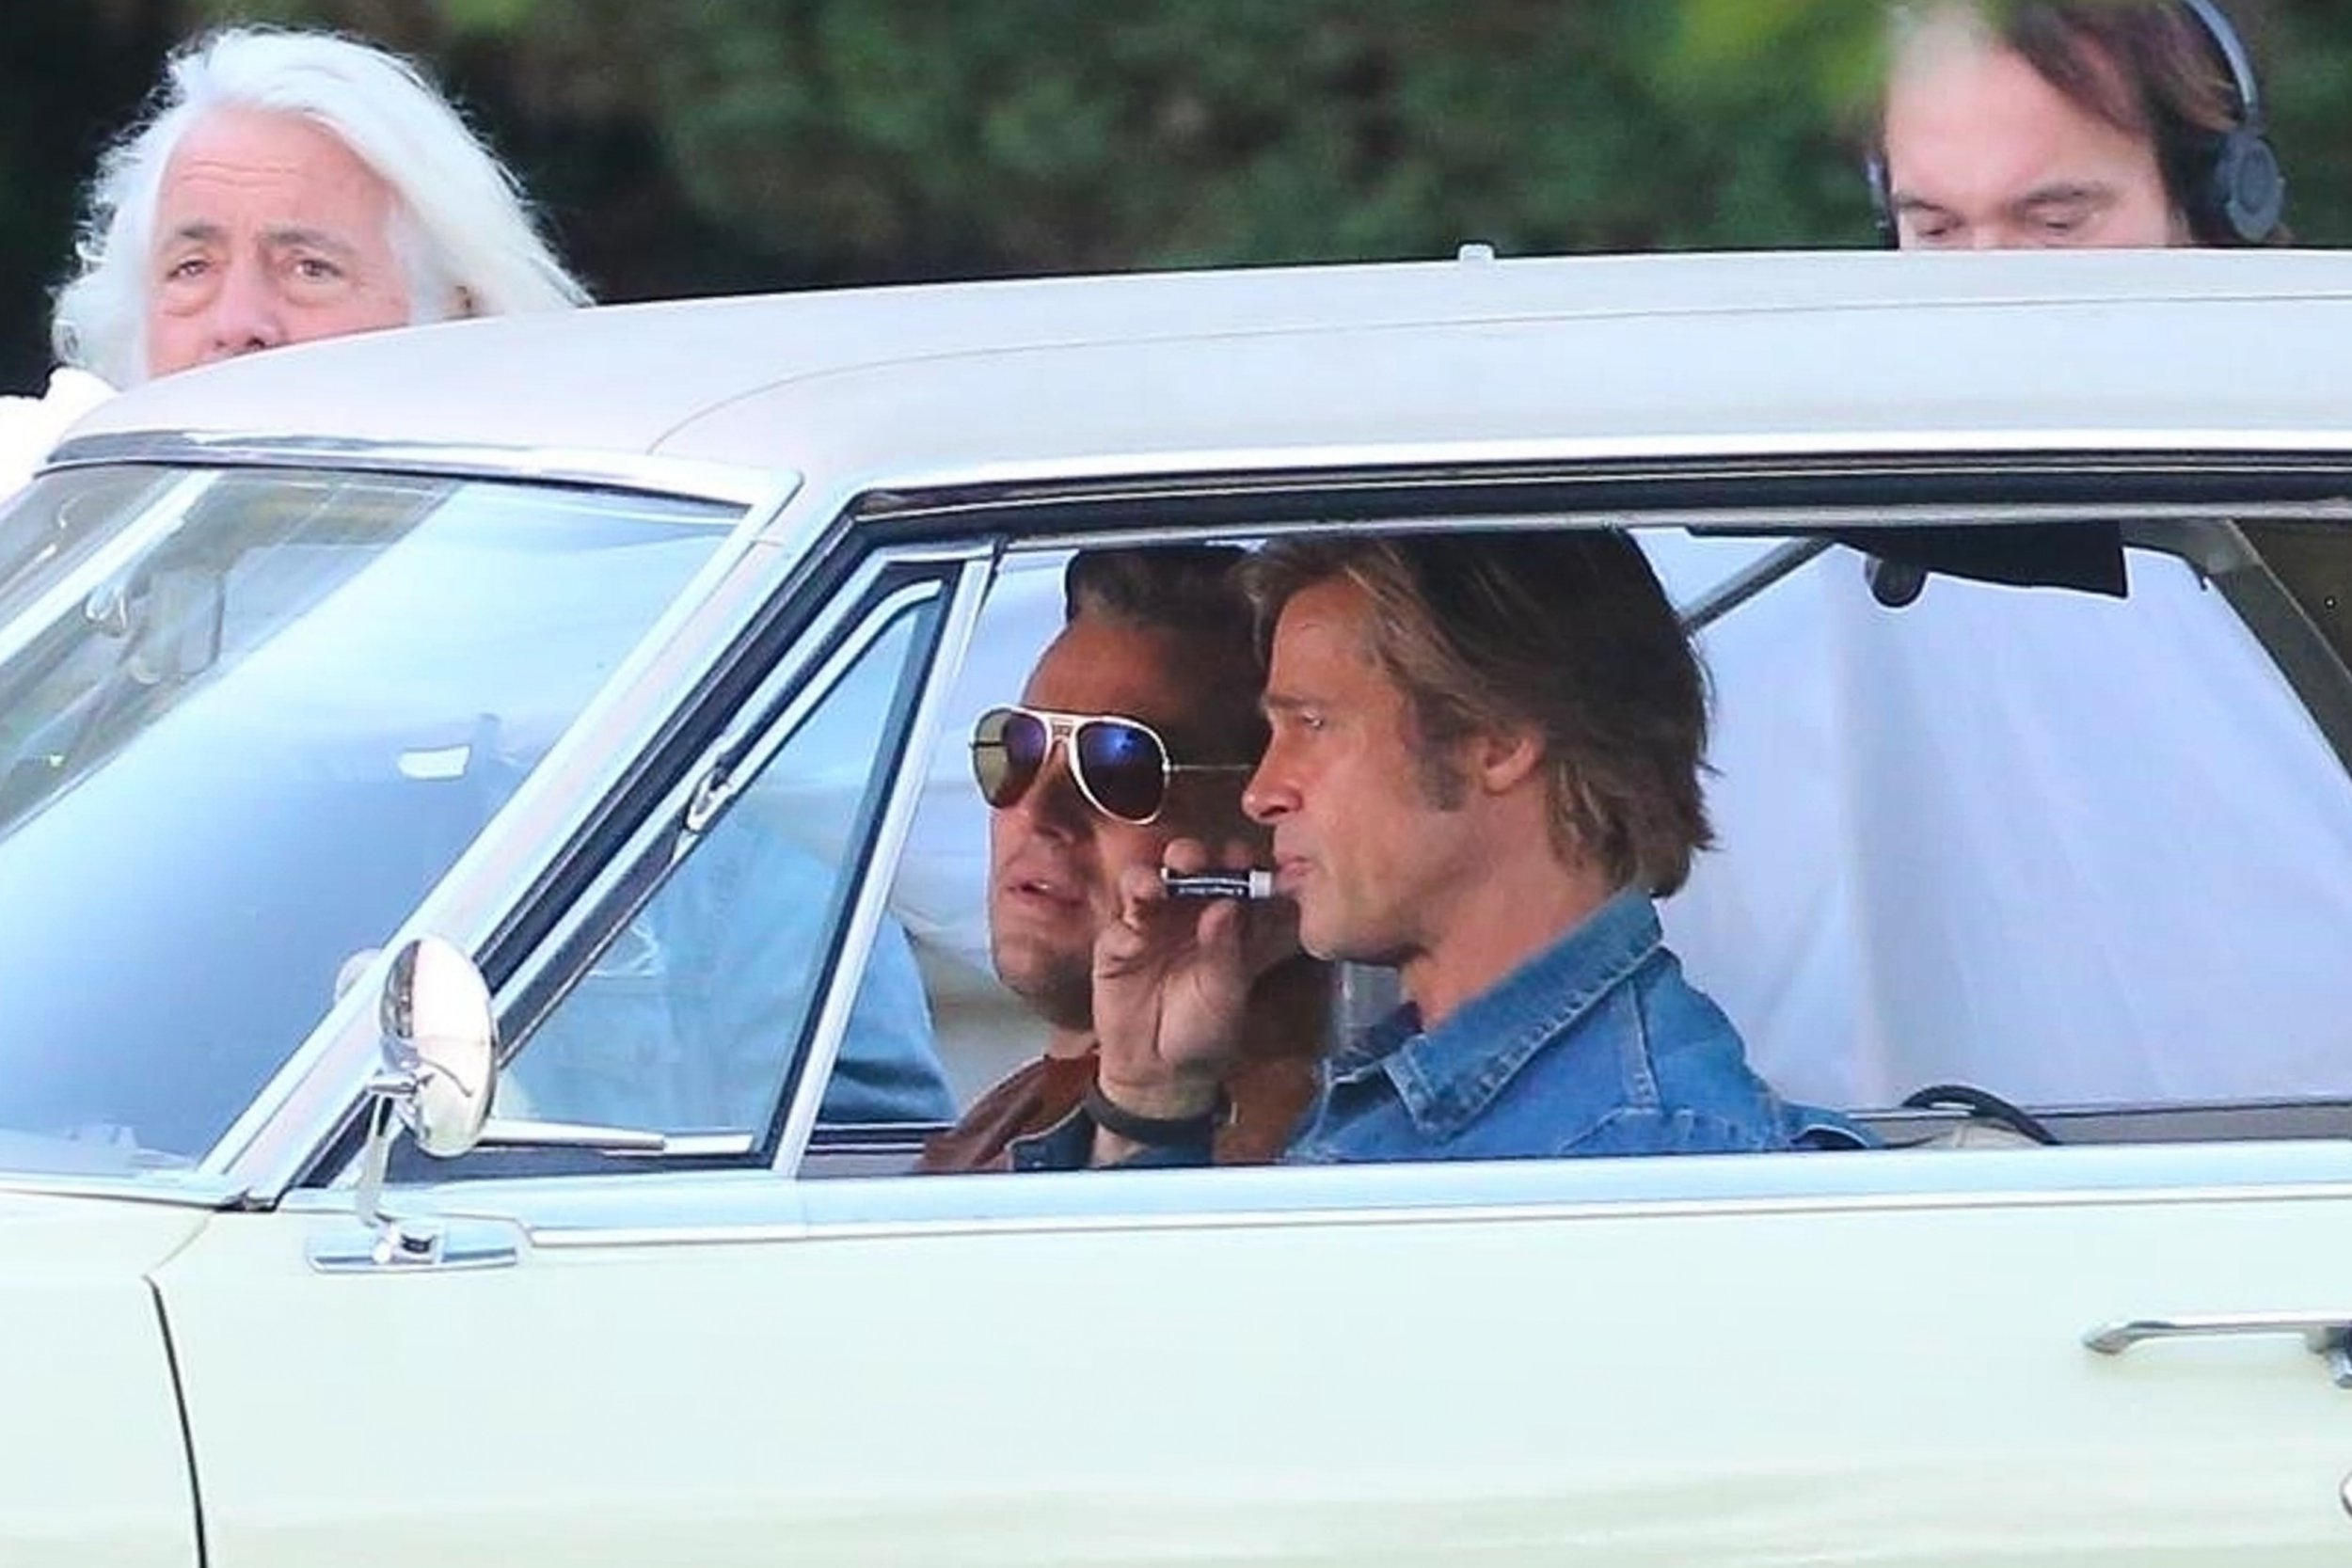 Los Angeles, CA - *EXCLUSIVE* - Brad Pitt and Leonardo DiCaprio were spotted in retro fashion on the set of their new movie, Once Upon A Time In Hollywood. In Quentin Tarantino???s crime mystery Leonardo plays TV actor Rick Dalton and Brad his stunt double Cliff Booth. The pair try to make a name for themselves in Tinseltown during the Charles Manson murders in 1969 Los Angeles. In the pictures the pair can be seen filming a car scene from the movie. Pictured: Brad Pitt, Leonardo DiCaprio, BACKGRID USA 11 SEPTEMBER 2018 USA: +1 310 798 9111 / usasales@backgrid.com UK: +44 208 344 2007 / uksales@backgrid.com *UK Clients - Pictures Containing Children Please Pixelate Face Prior To Publication*